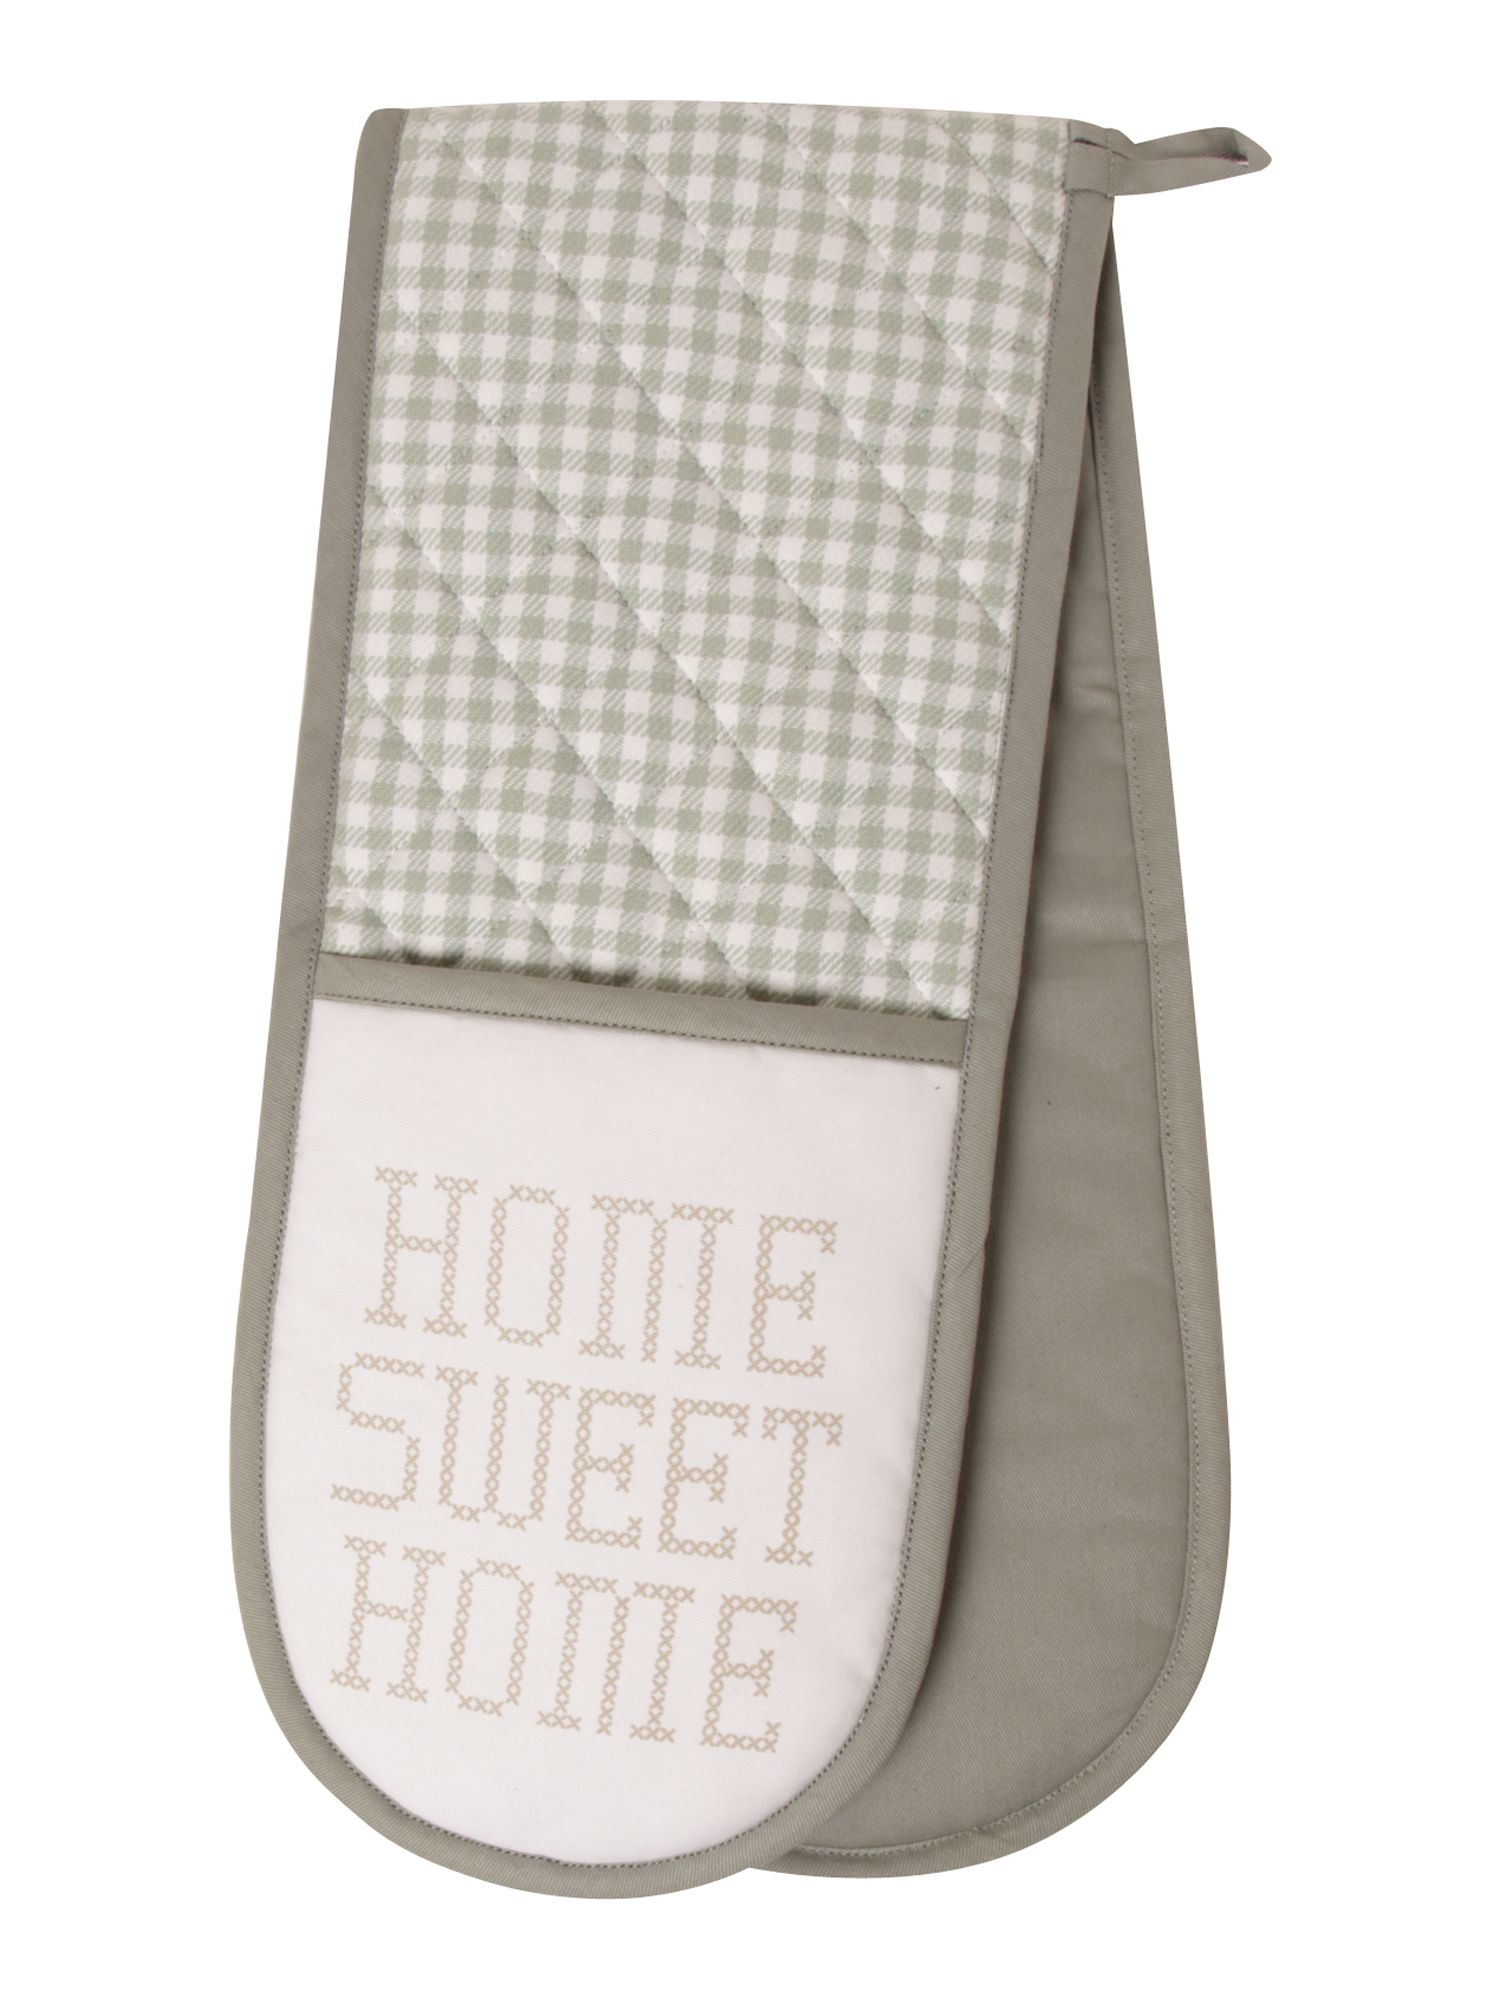 Country cottage double oven glove